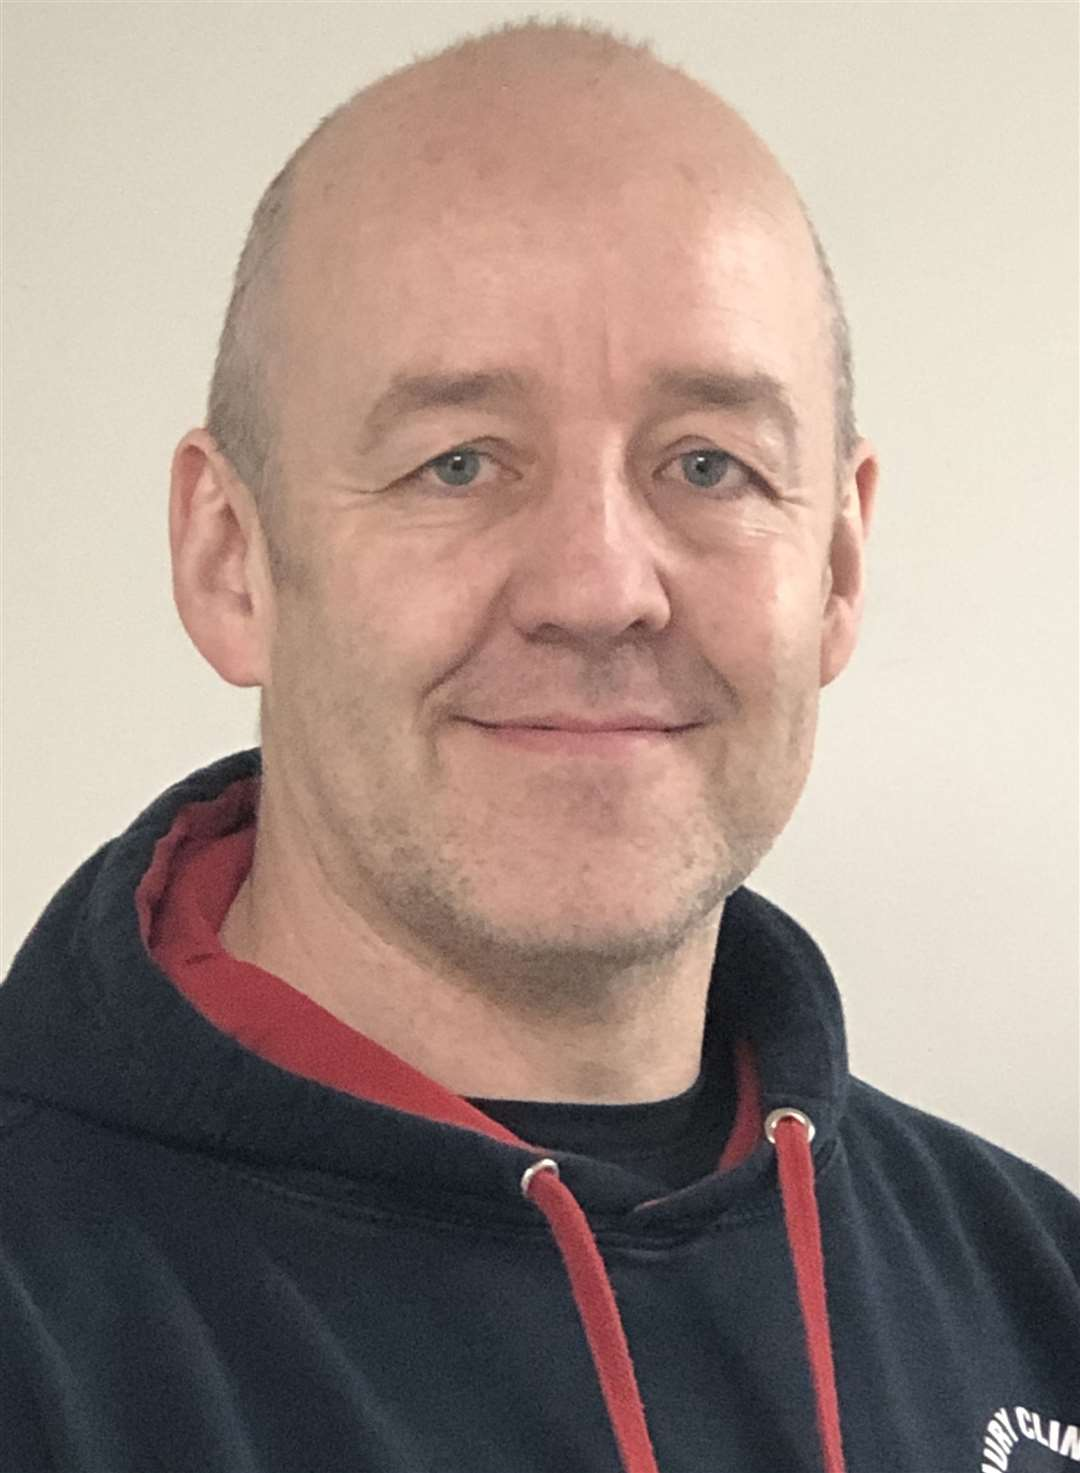 Sports therapist Simon Kavanagh, says there are things we can do to stay healthy